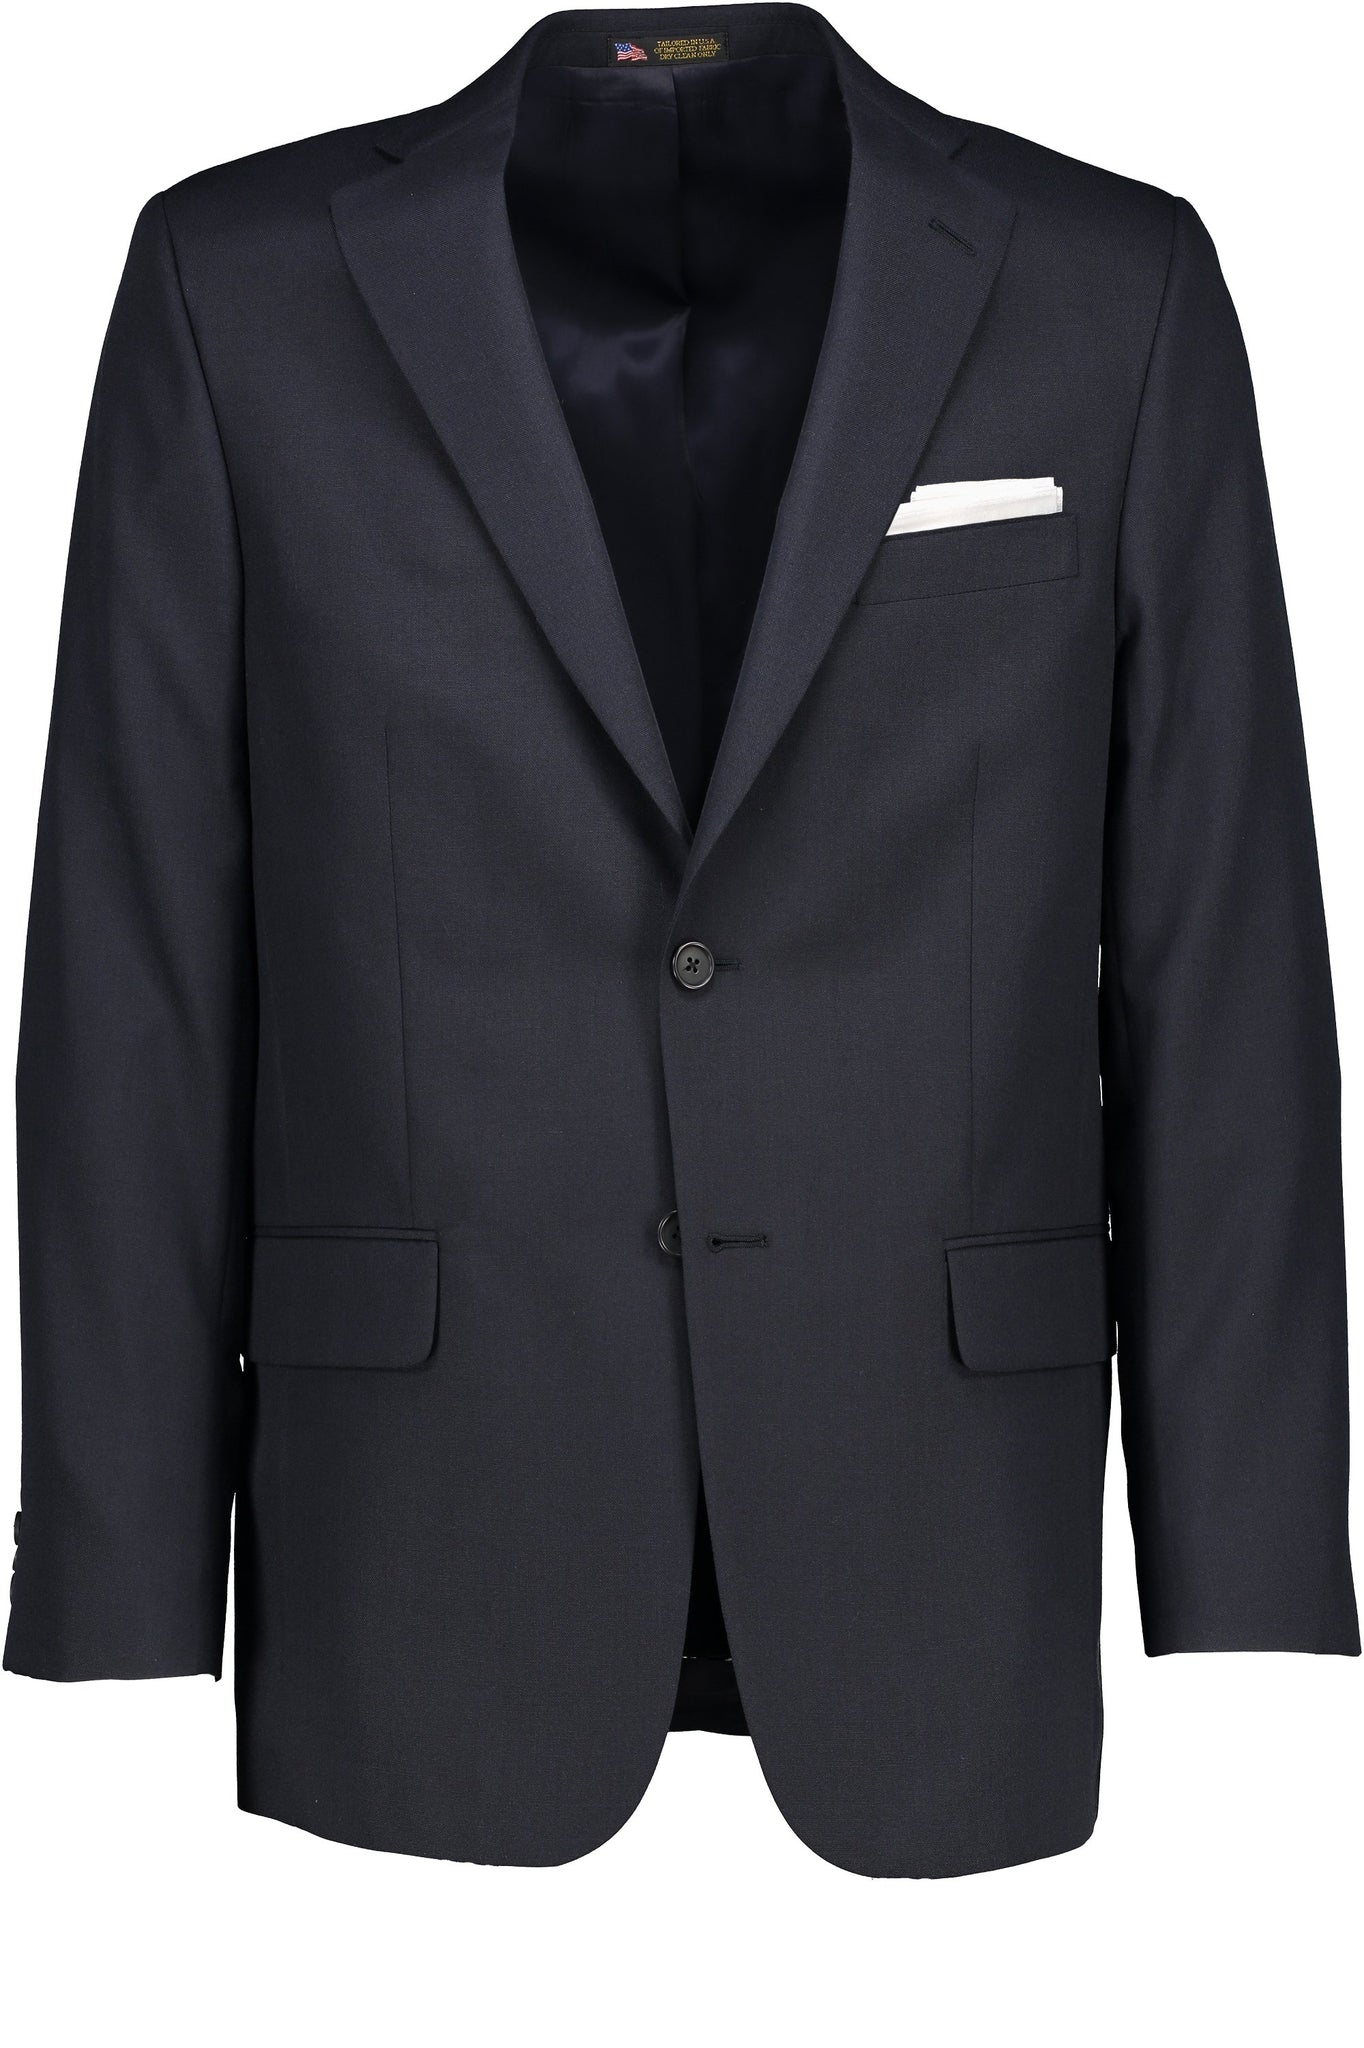 Classic Fit Navy Wool Traveler SS Jacket - Big & Tall -  Hardwick.com